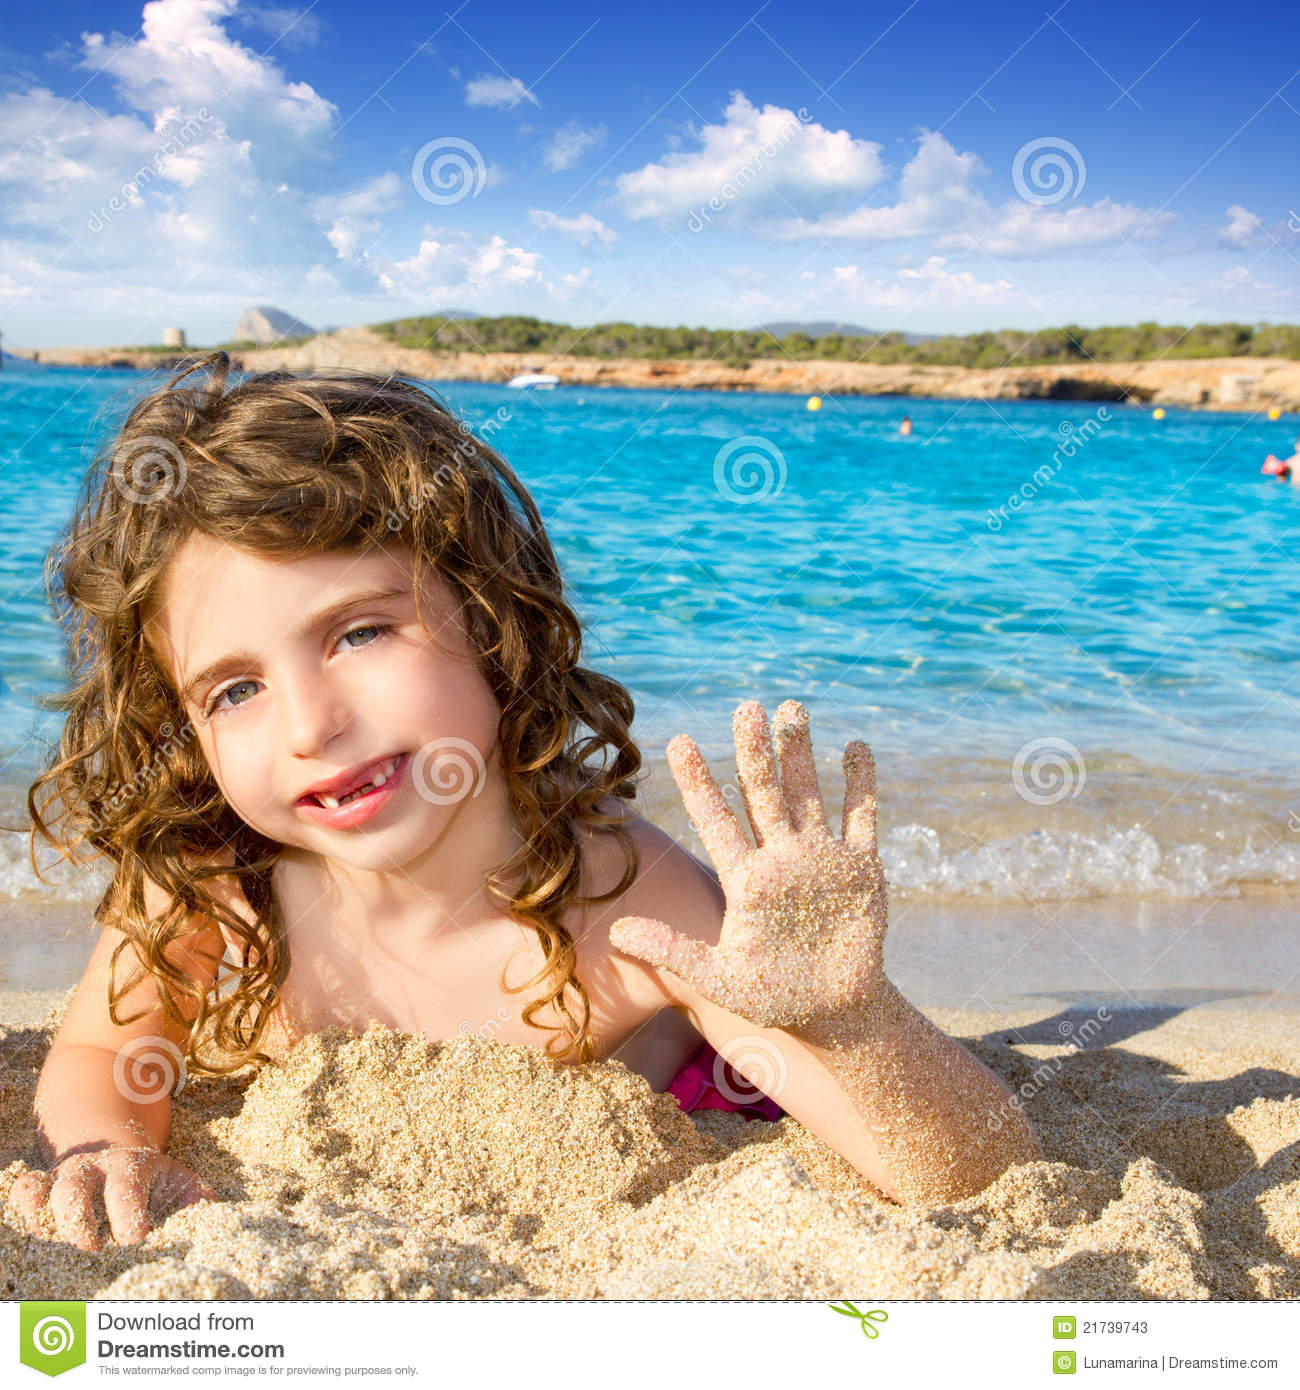 Sandy Beach: Little Girl Greeting Hand Gesture In Sandy Beach Stock